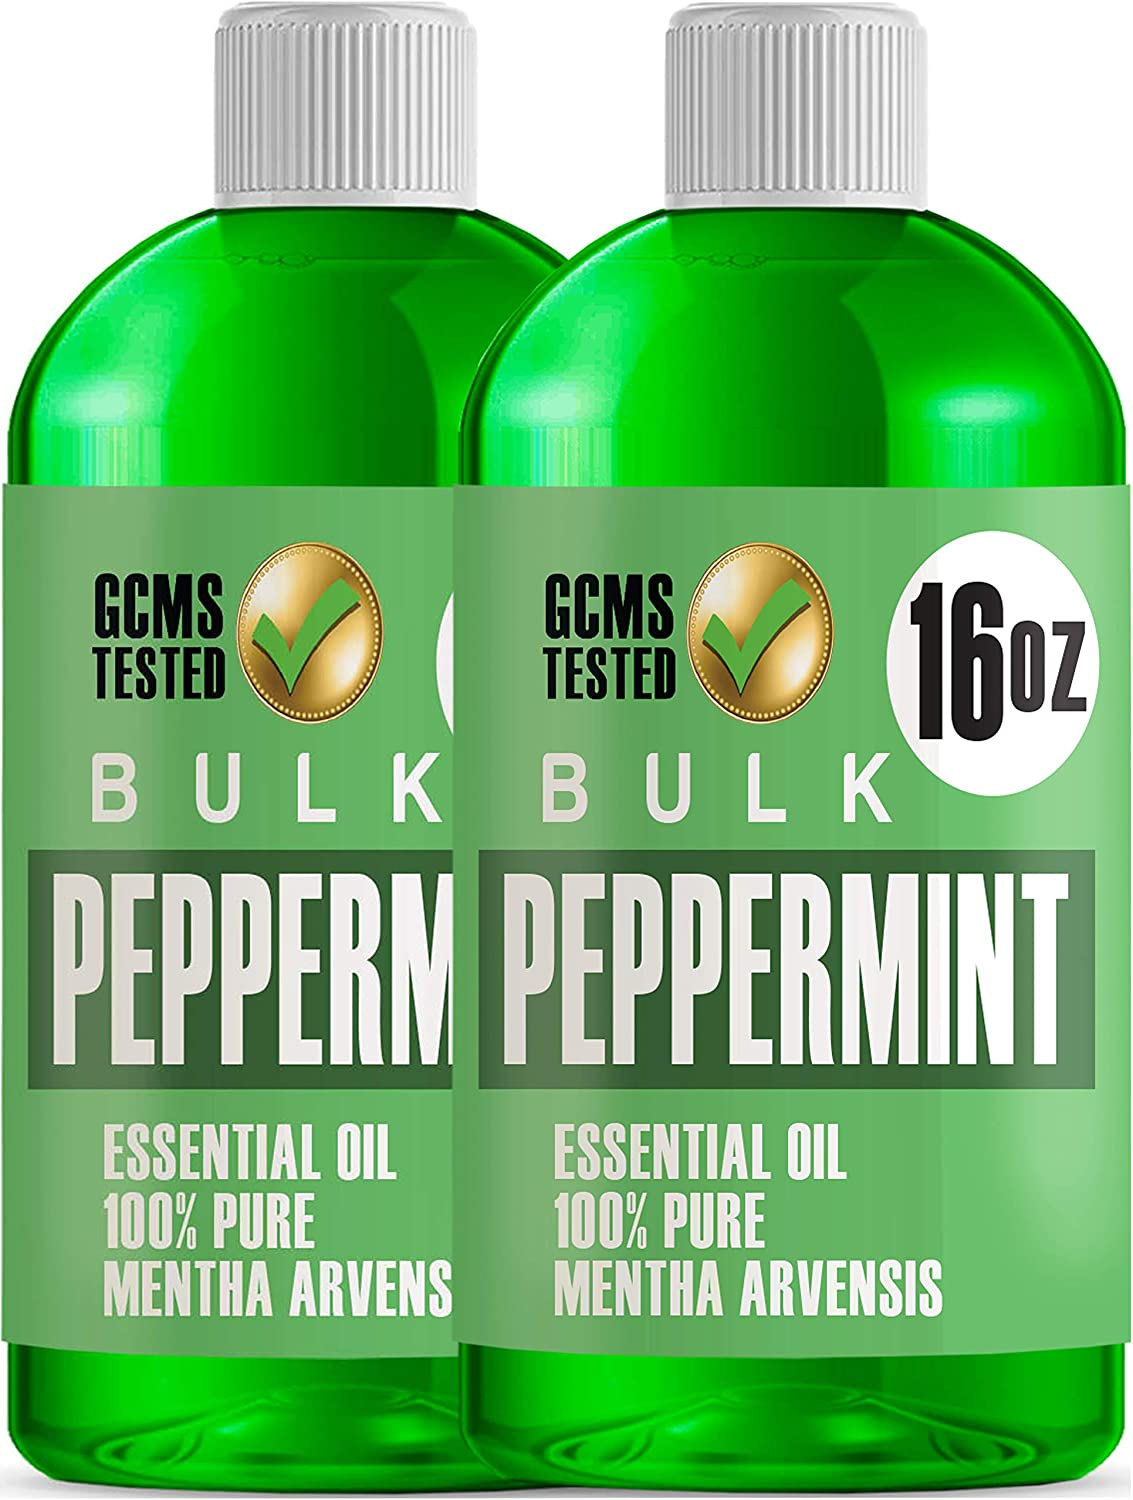 32oz Bulk Peppermint Essential Oil (Giant 16 Ounce Bottle- Therapeutic Grade Peppermint Oil) Perfect for Aromatherapy Diffuser, Help Repel Mice & Rats, Candle & Soap Making, Lotions, Body Wash